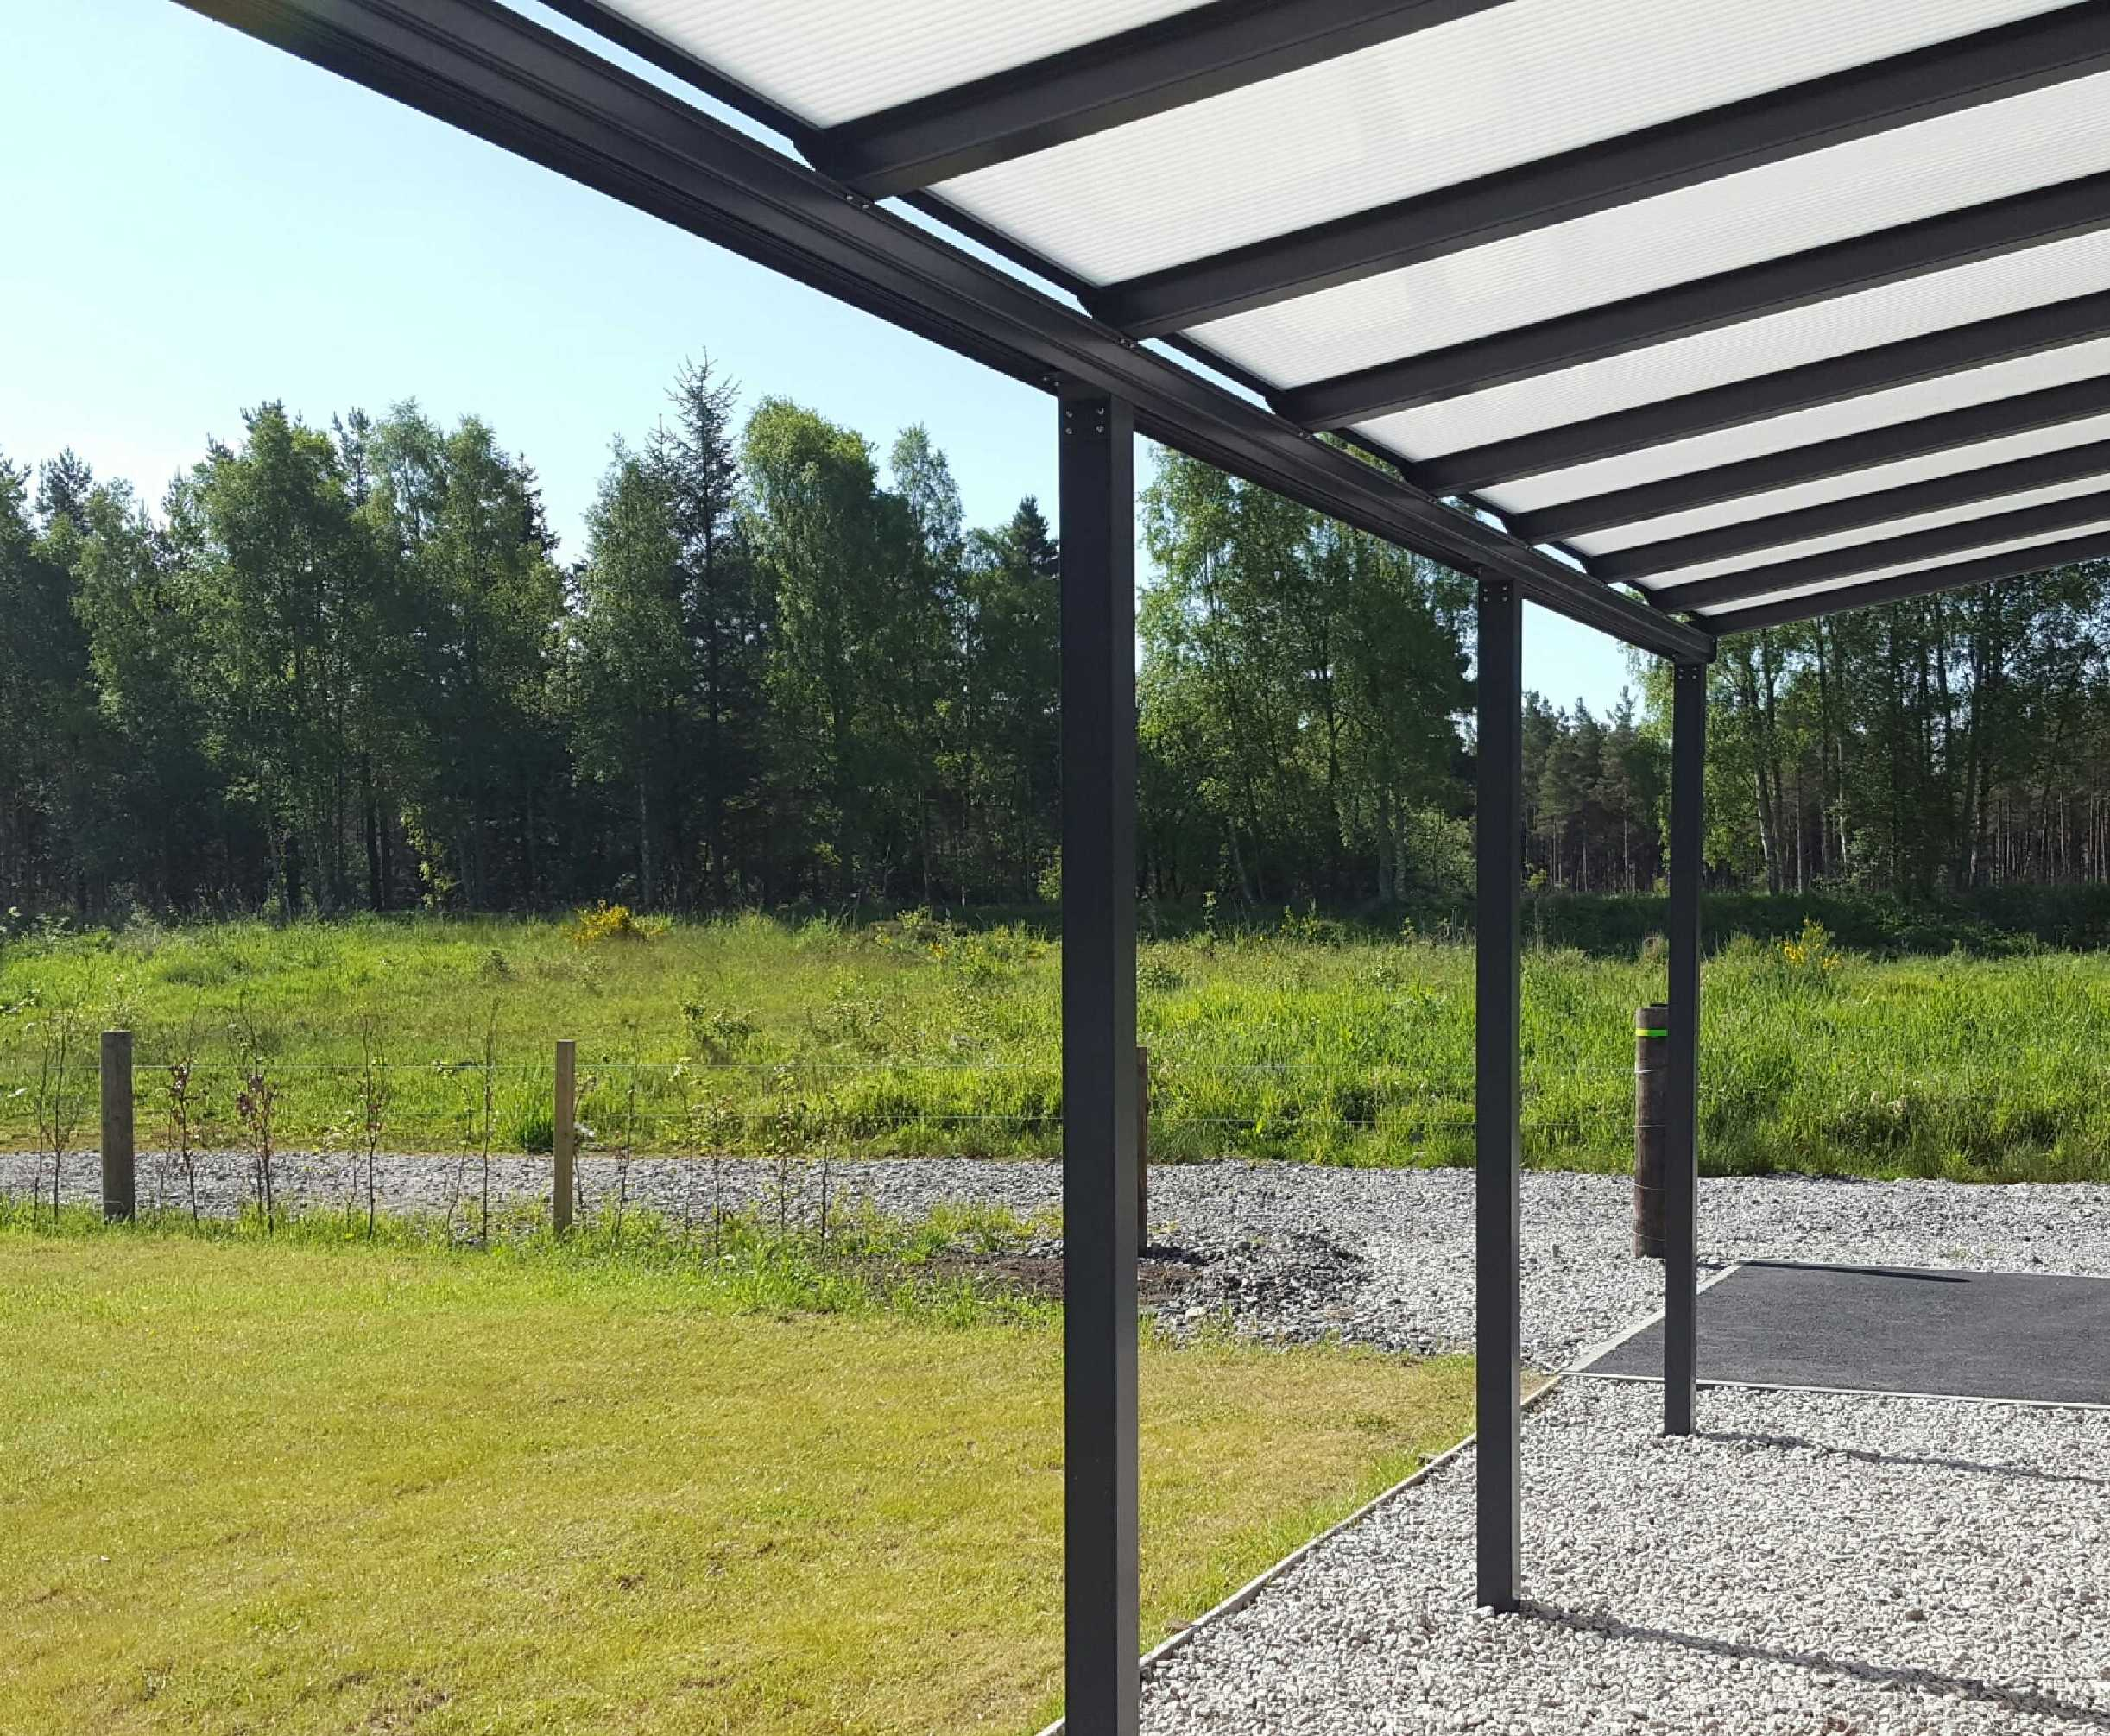 Omega Smart Lean-To Canopy, Anthracite Grey, 16mm Polycarbonate Glazing - 6.3m (W) x 3.0m (P), (4) Supporting Posts